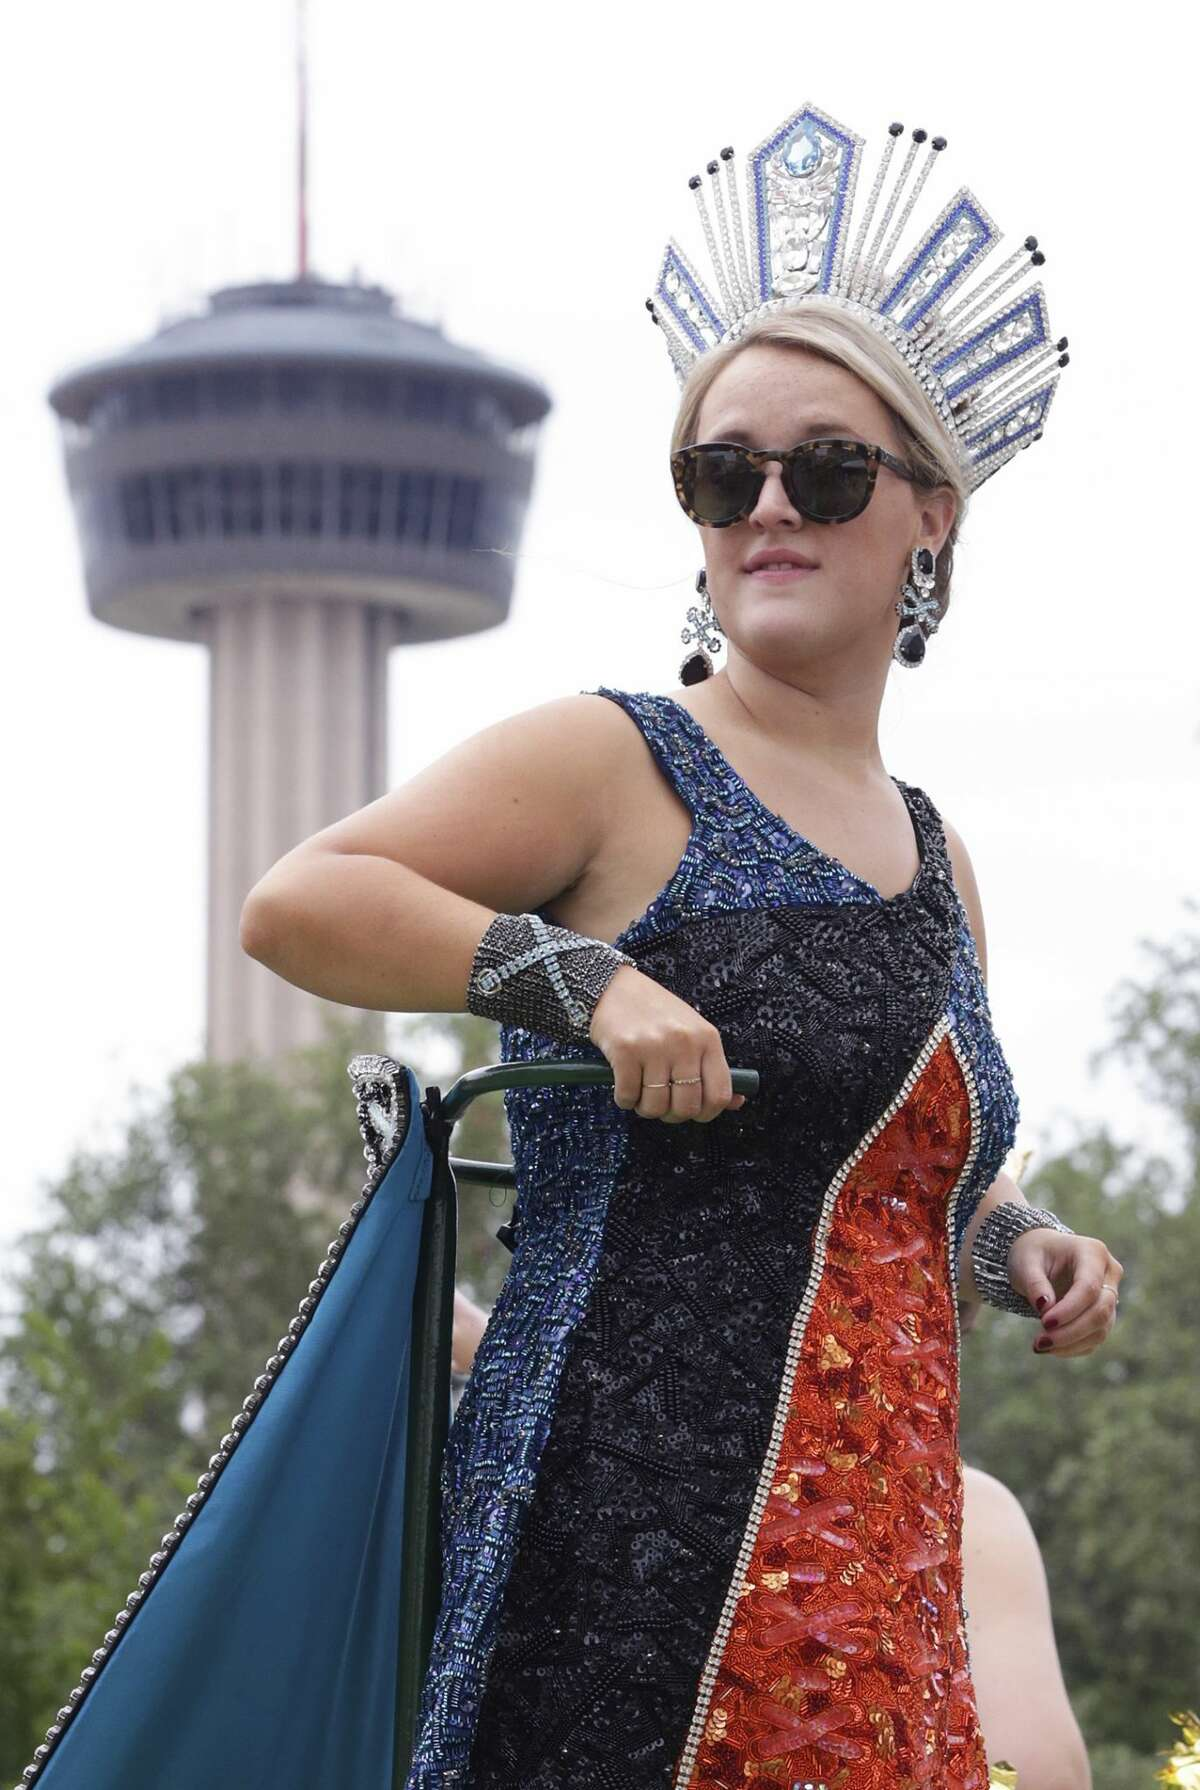 Battle of Flowers 2018: Margaret Deane Cardwell, Duchess of Refined Luxury, looks back down the parade route during the Battle of Flowers Parade in Alamo Plaza.